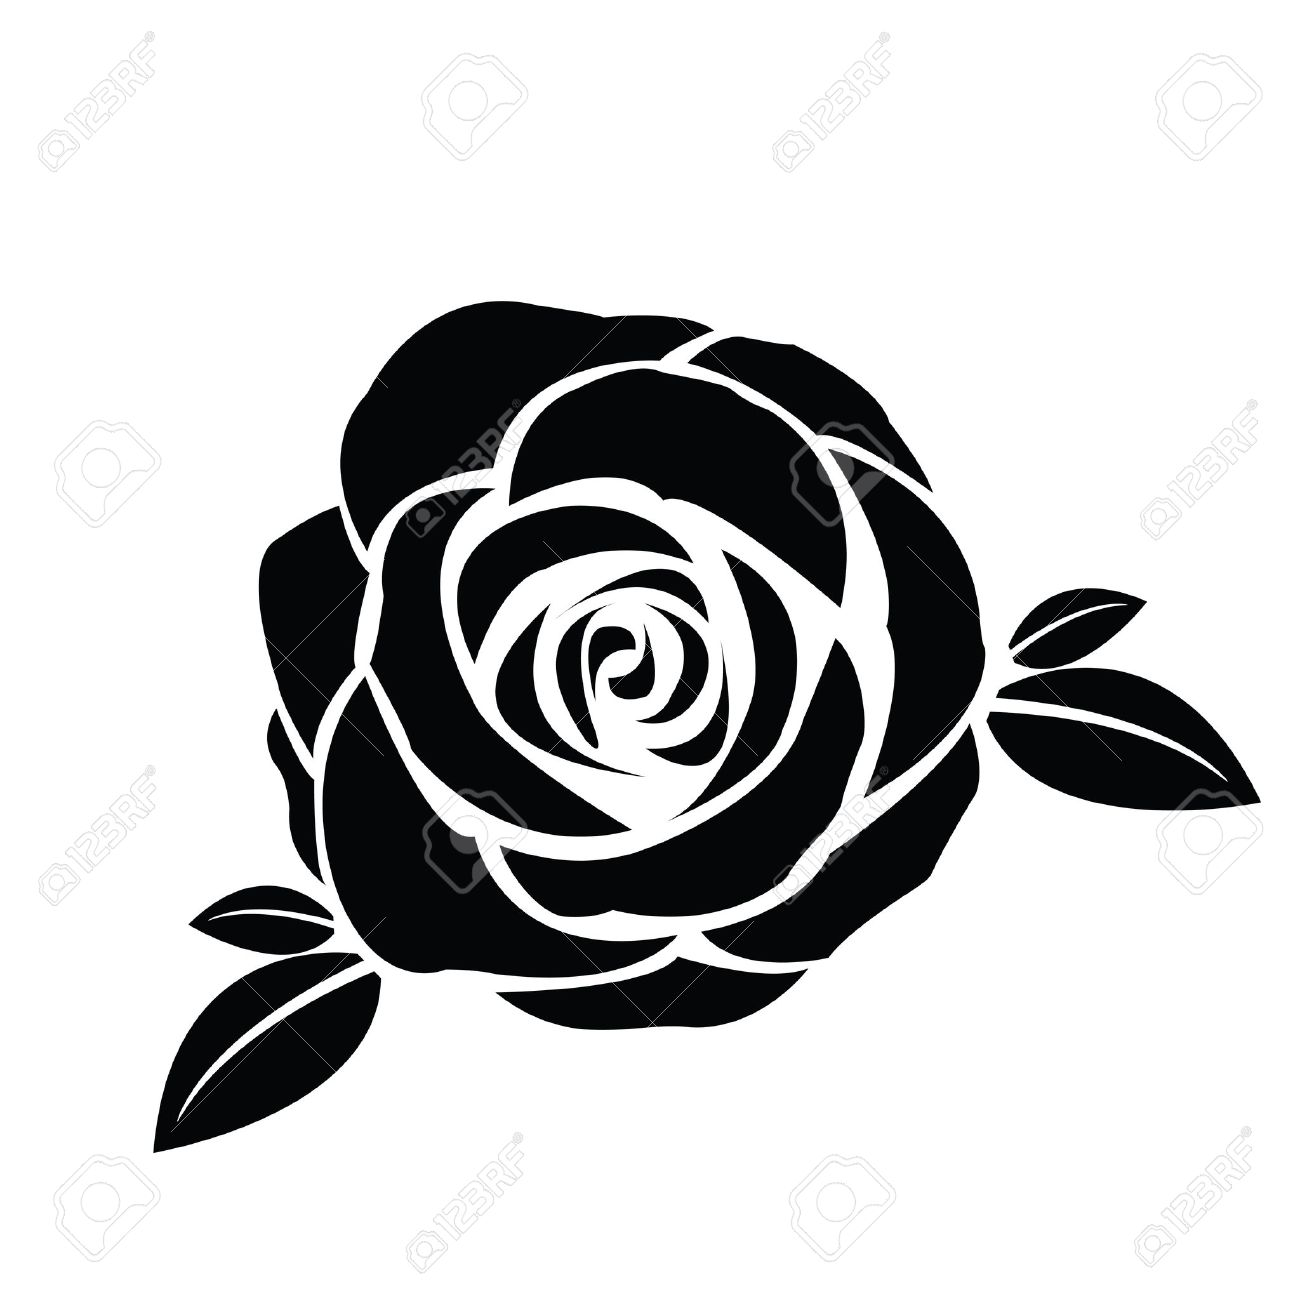 black silhouette of rose with leaves royalty free cliparts vectors rh 123rf com vector rose border vector rose pattern